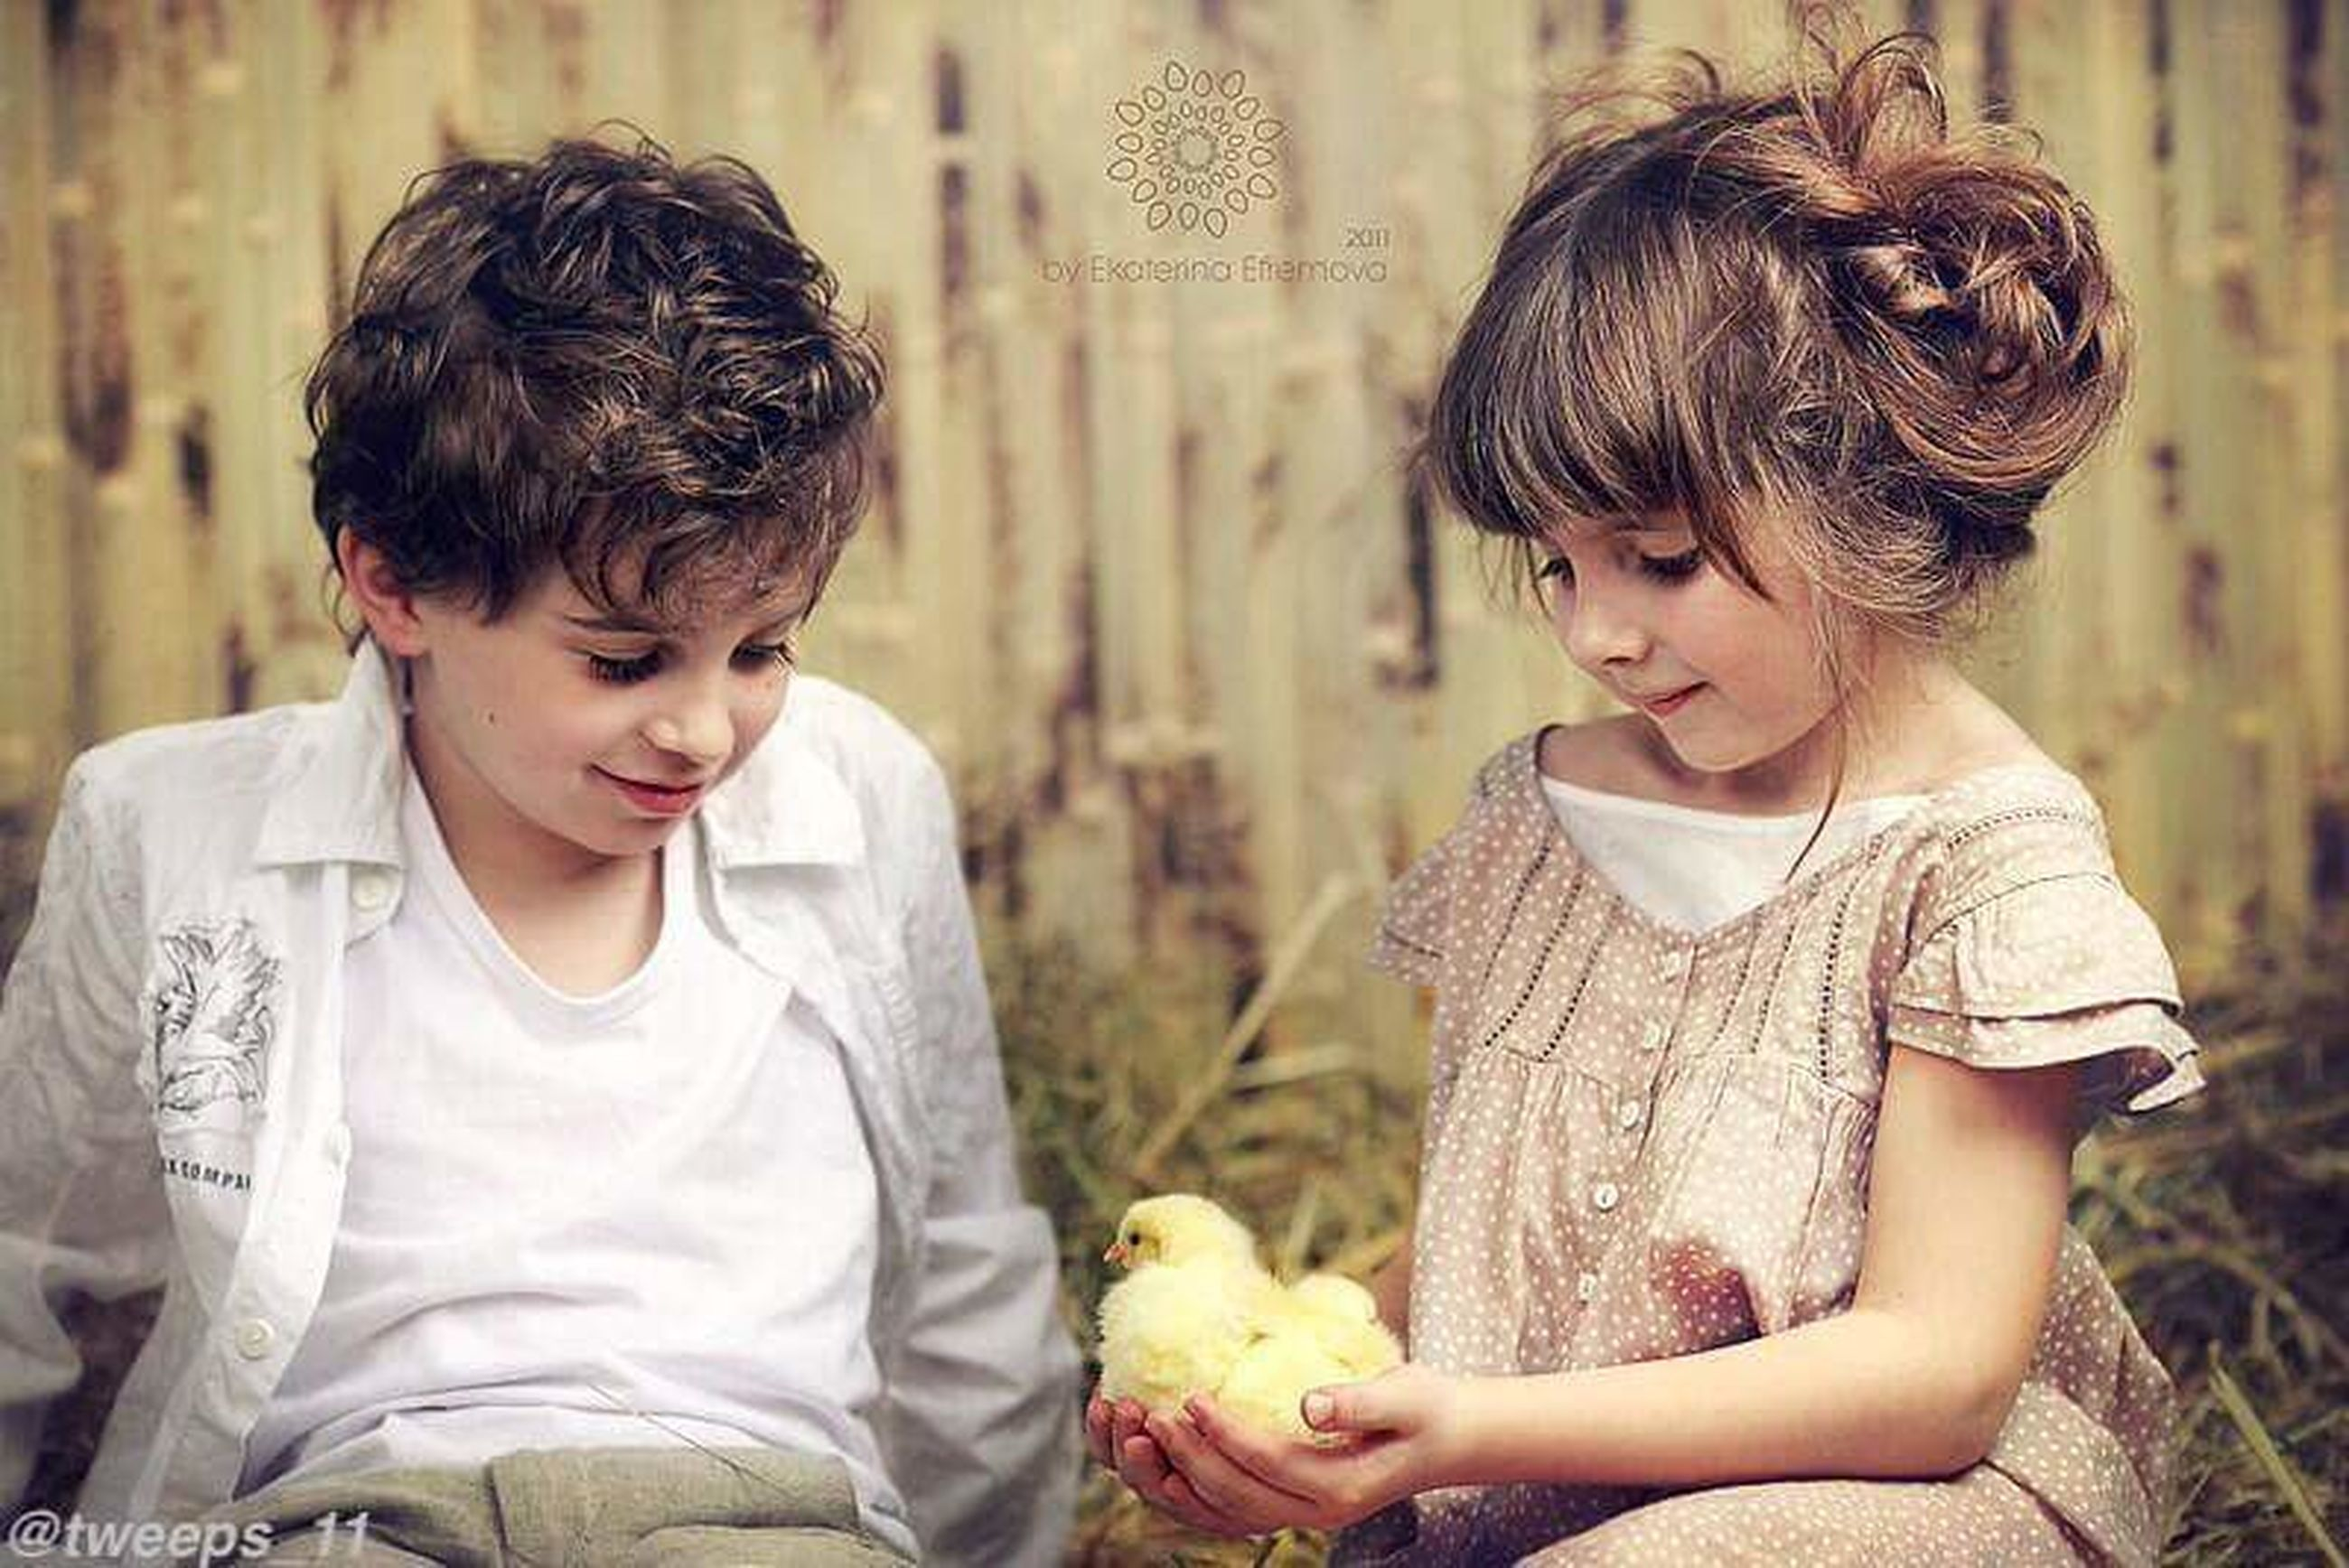 childhood, person, elementary age, casual clothing, girls, lifestyles, leisure activity, bonding, togetherness, boys, cute, innocence, waist up, happiness, love, focus on foreground, smiling